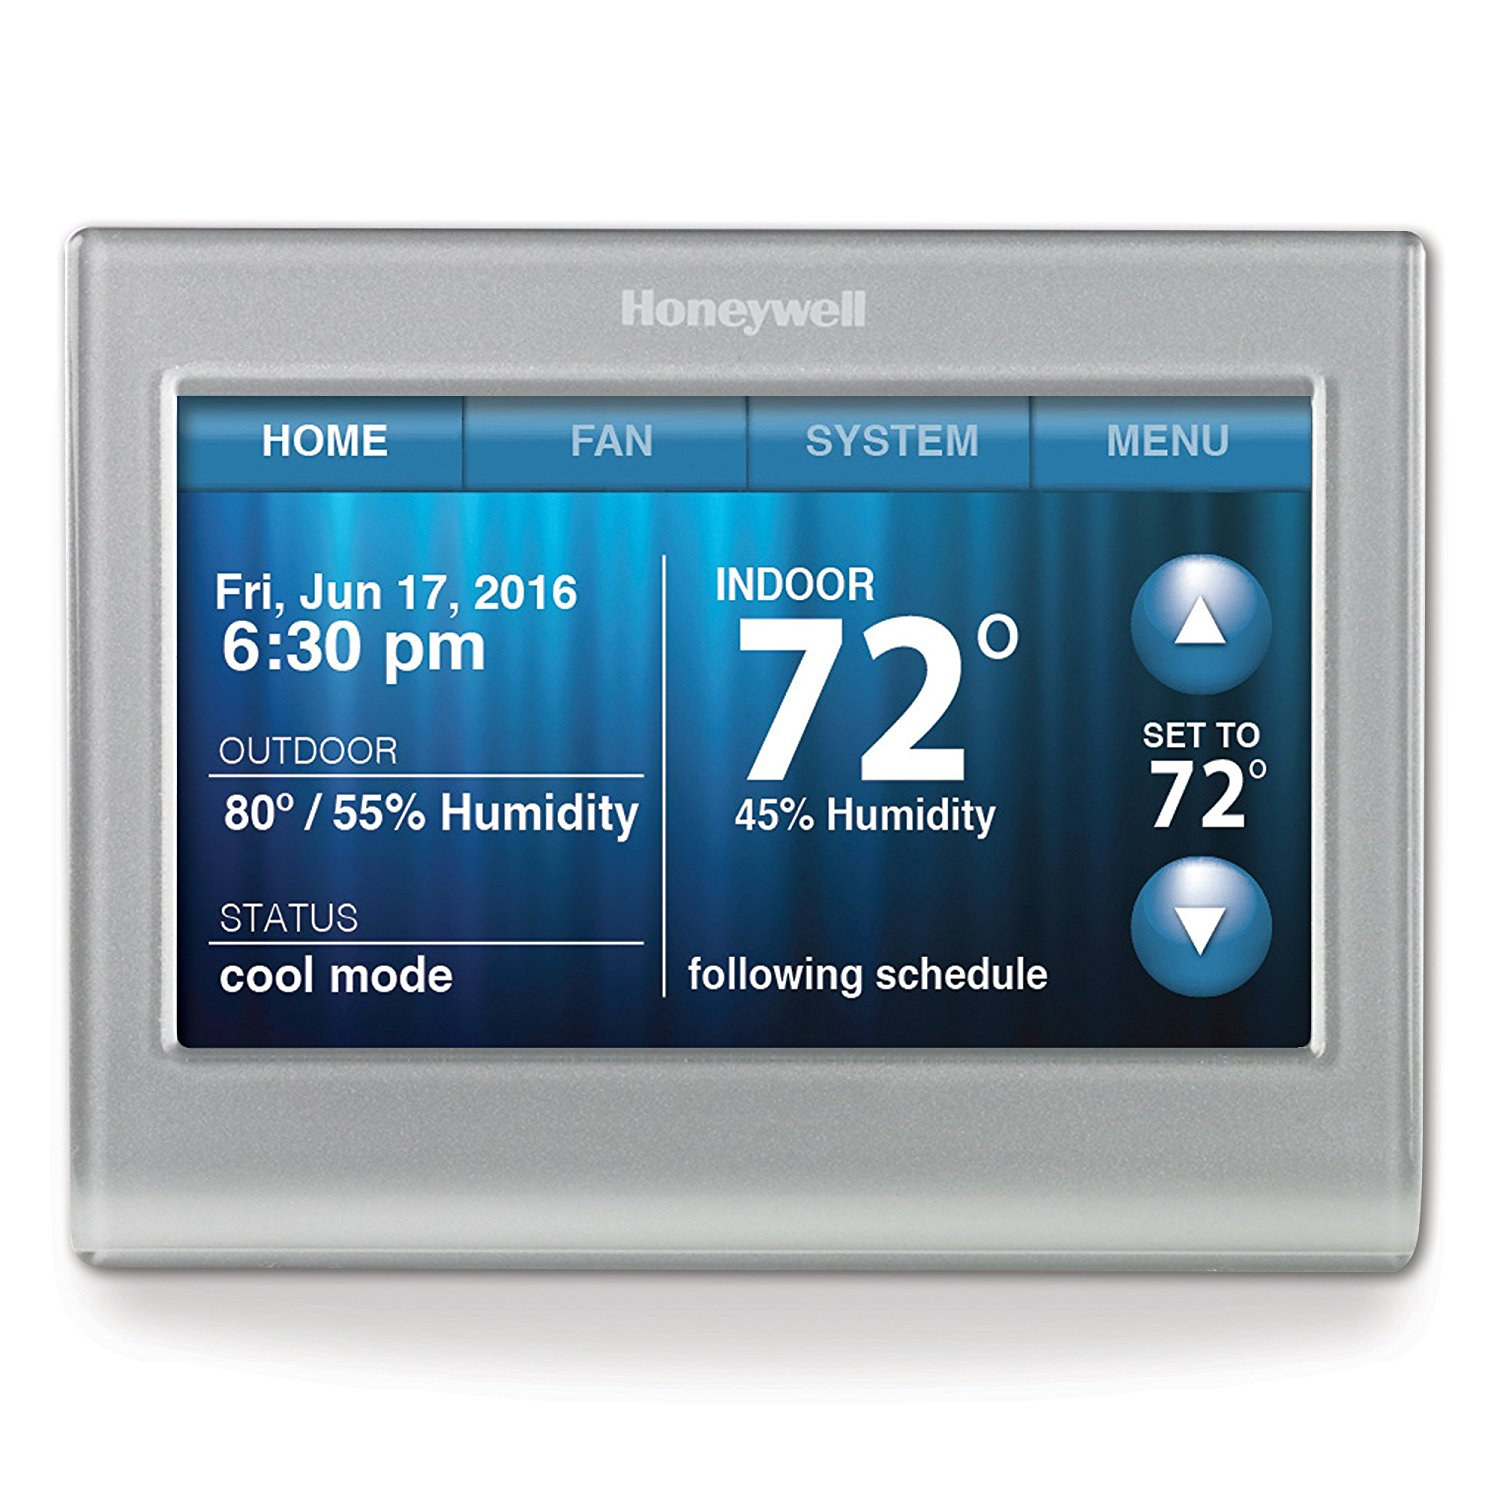 Honeywell Smart 7-Day Programmable Thermostat With Wi-Fi And Touchscreen – Available with Smart Consultation